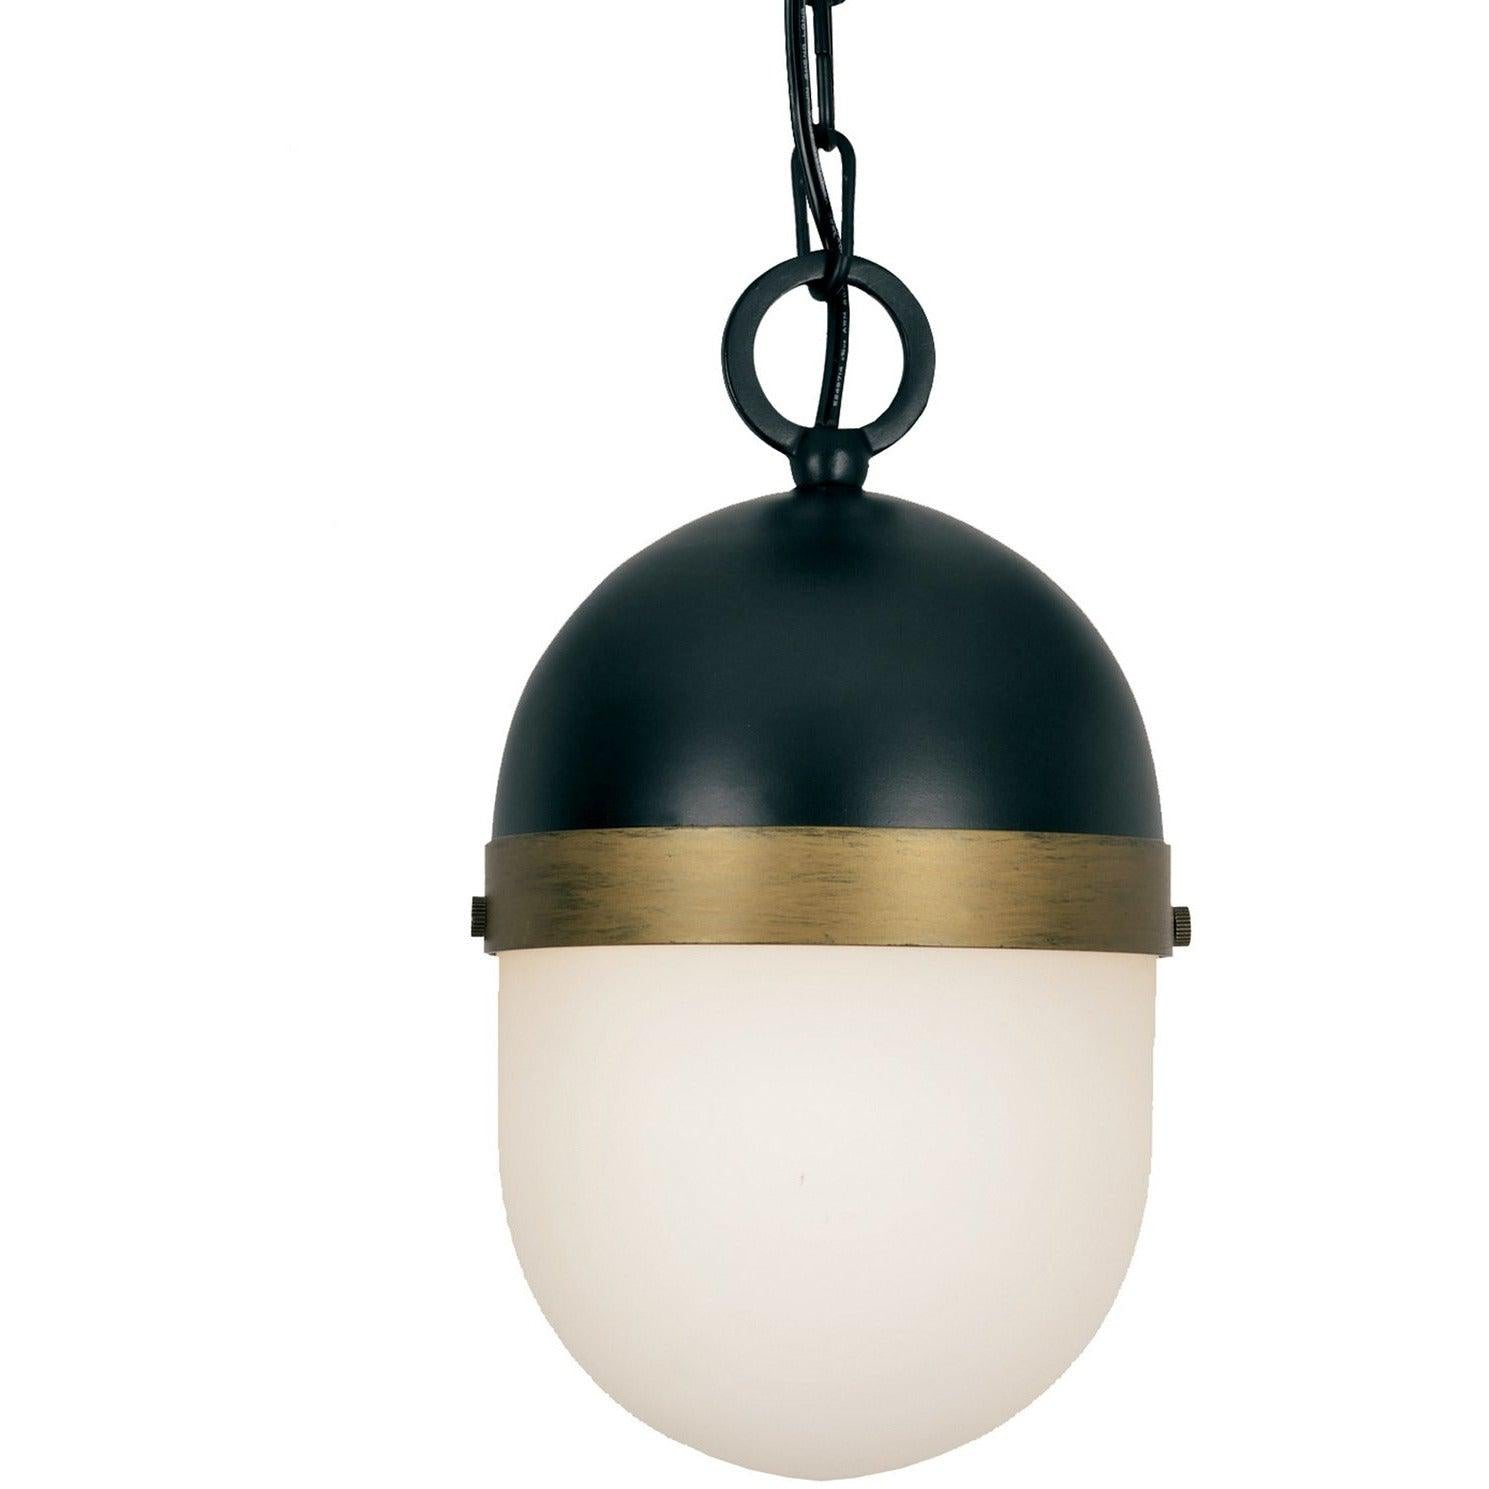 Crystorama - CAP-8505-MK-TG - One Light Outdoor Pendant - Capsule - Matte Black